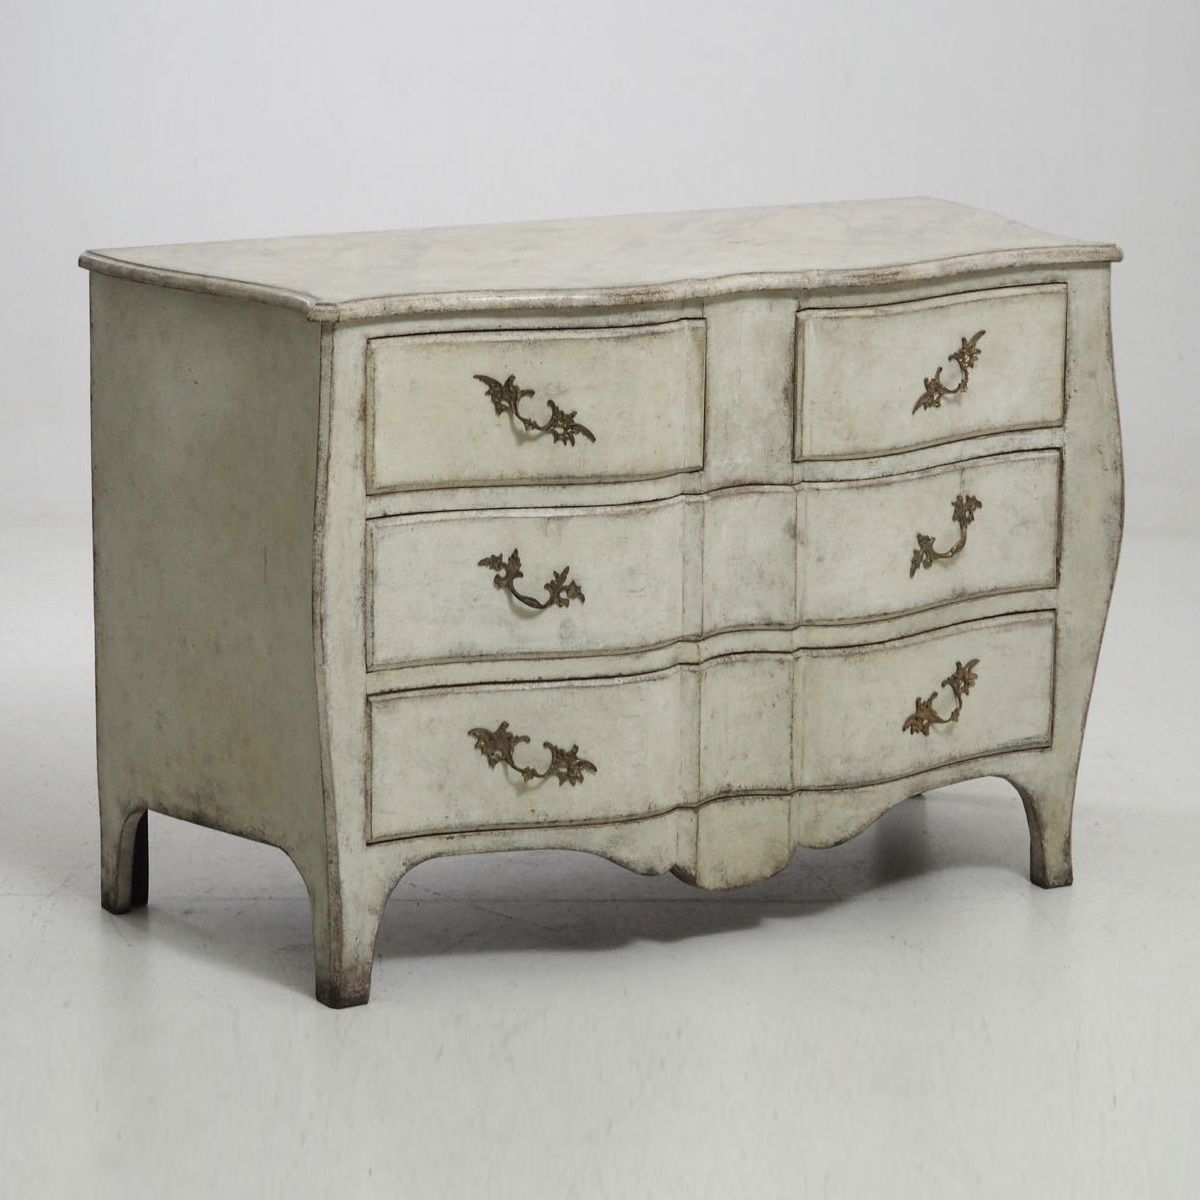 Swedish chest in Rococo style, 19th C. - € 2.000